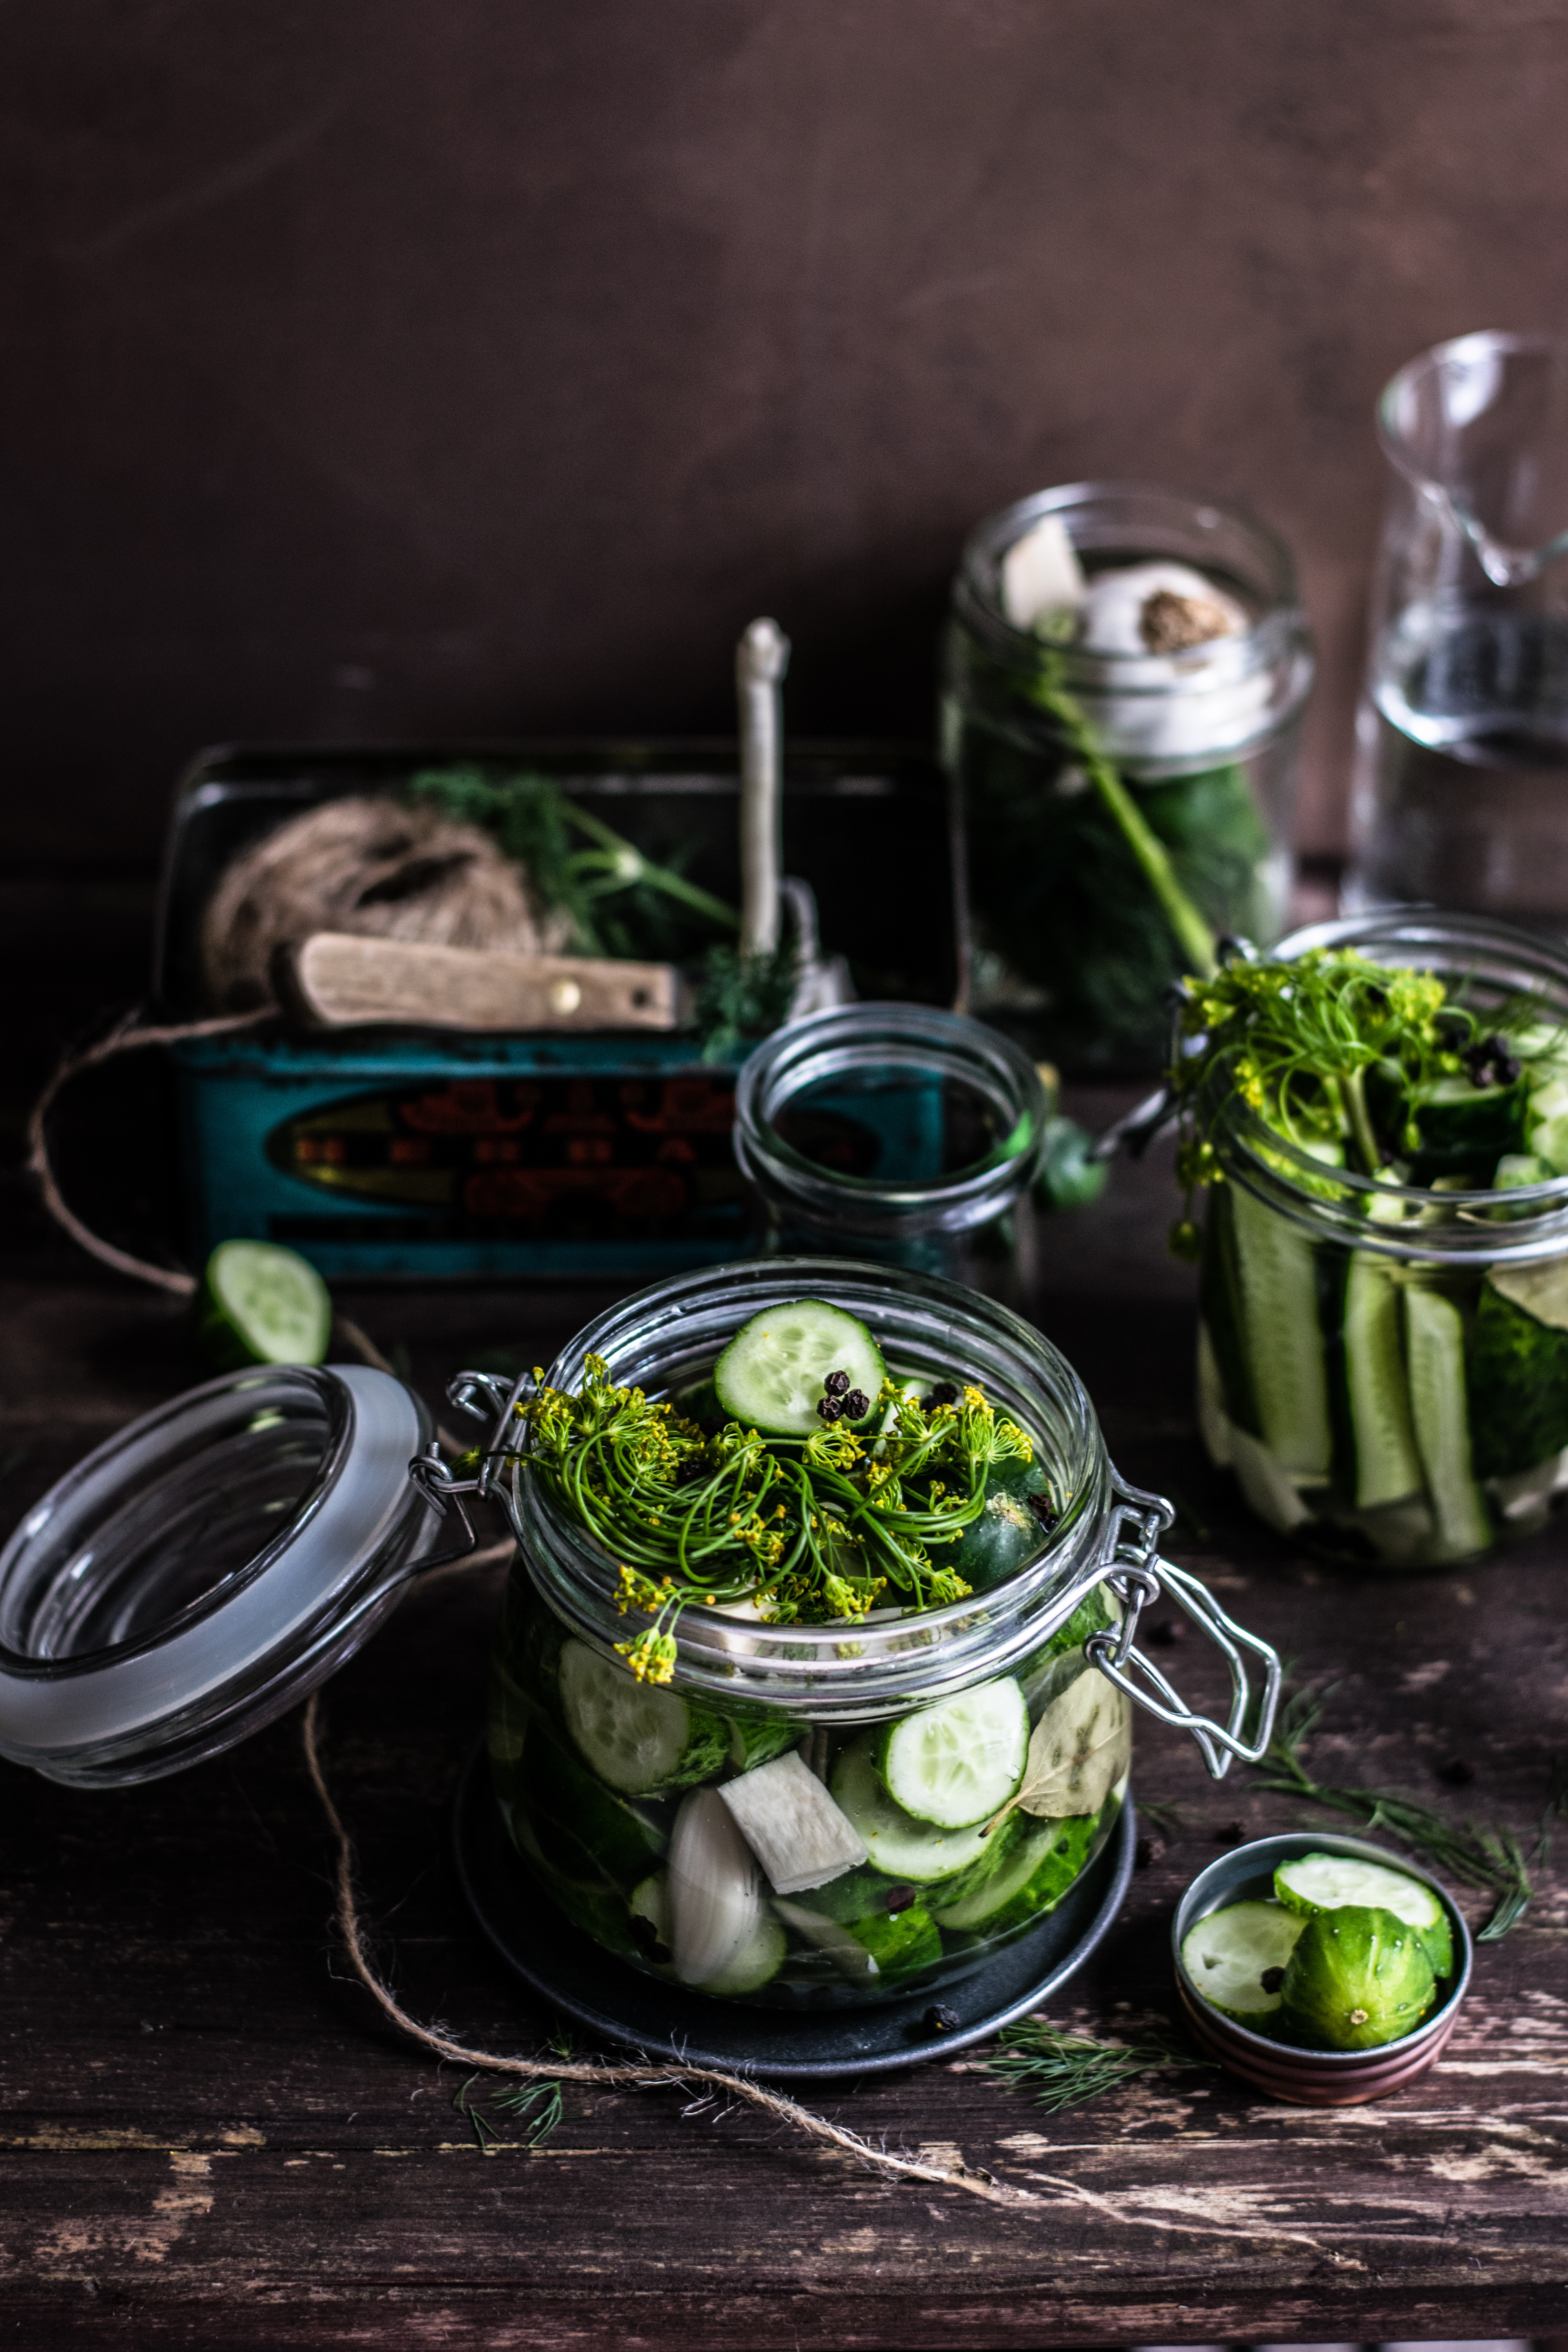 7 Easy Ways To Reduce Food Waste At Home